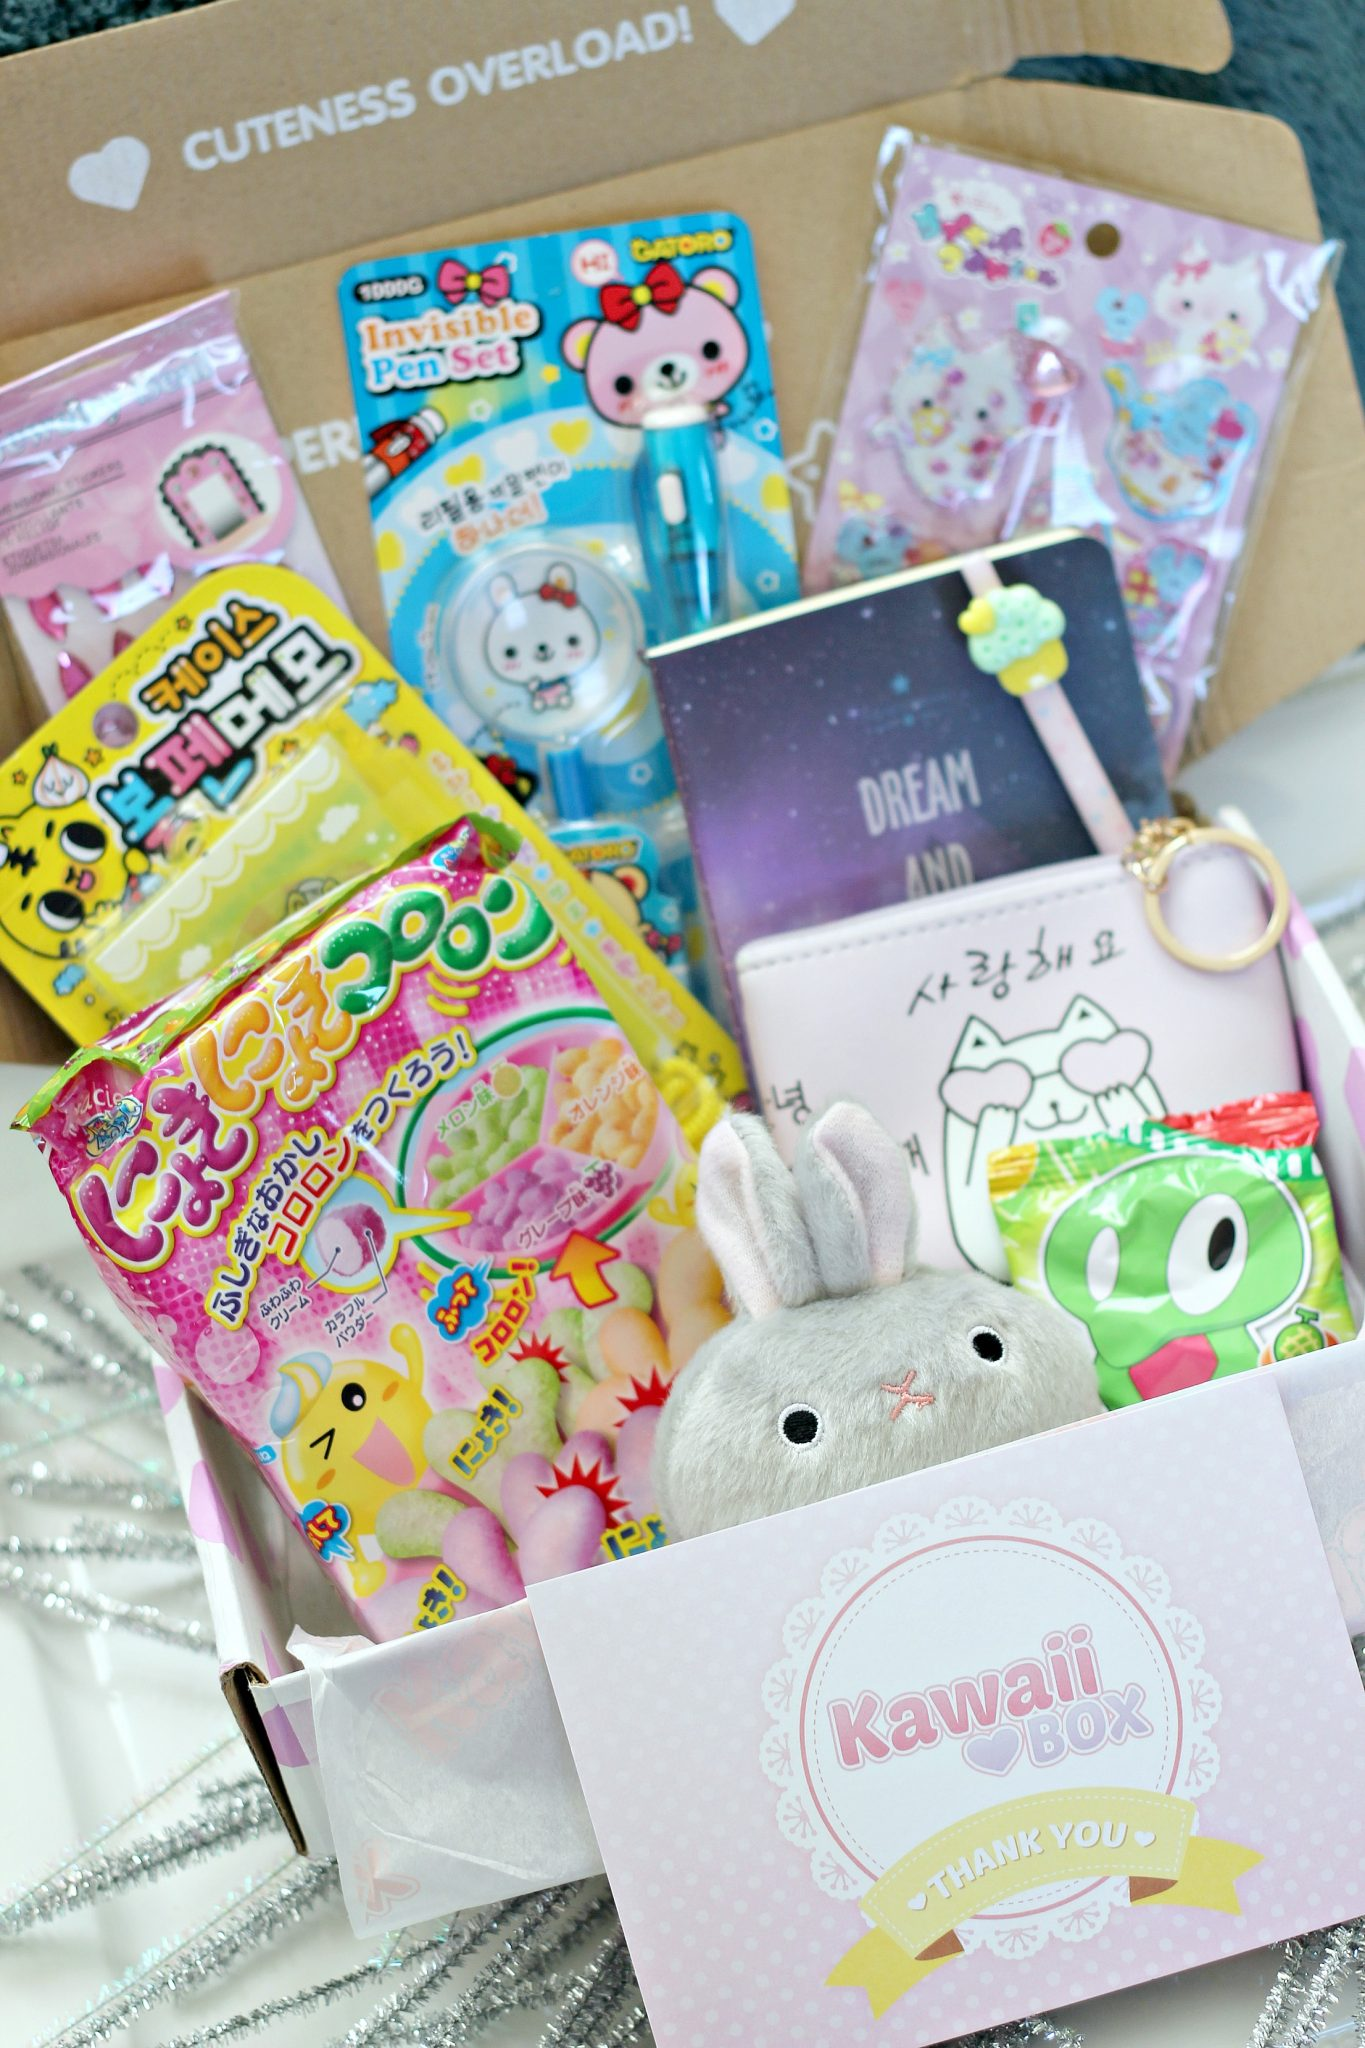 Review & Giveaway of the Cutest  Subscription Box Ever: Kawaii Box! graphic